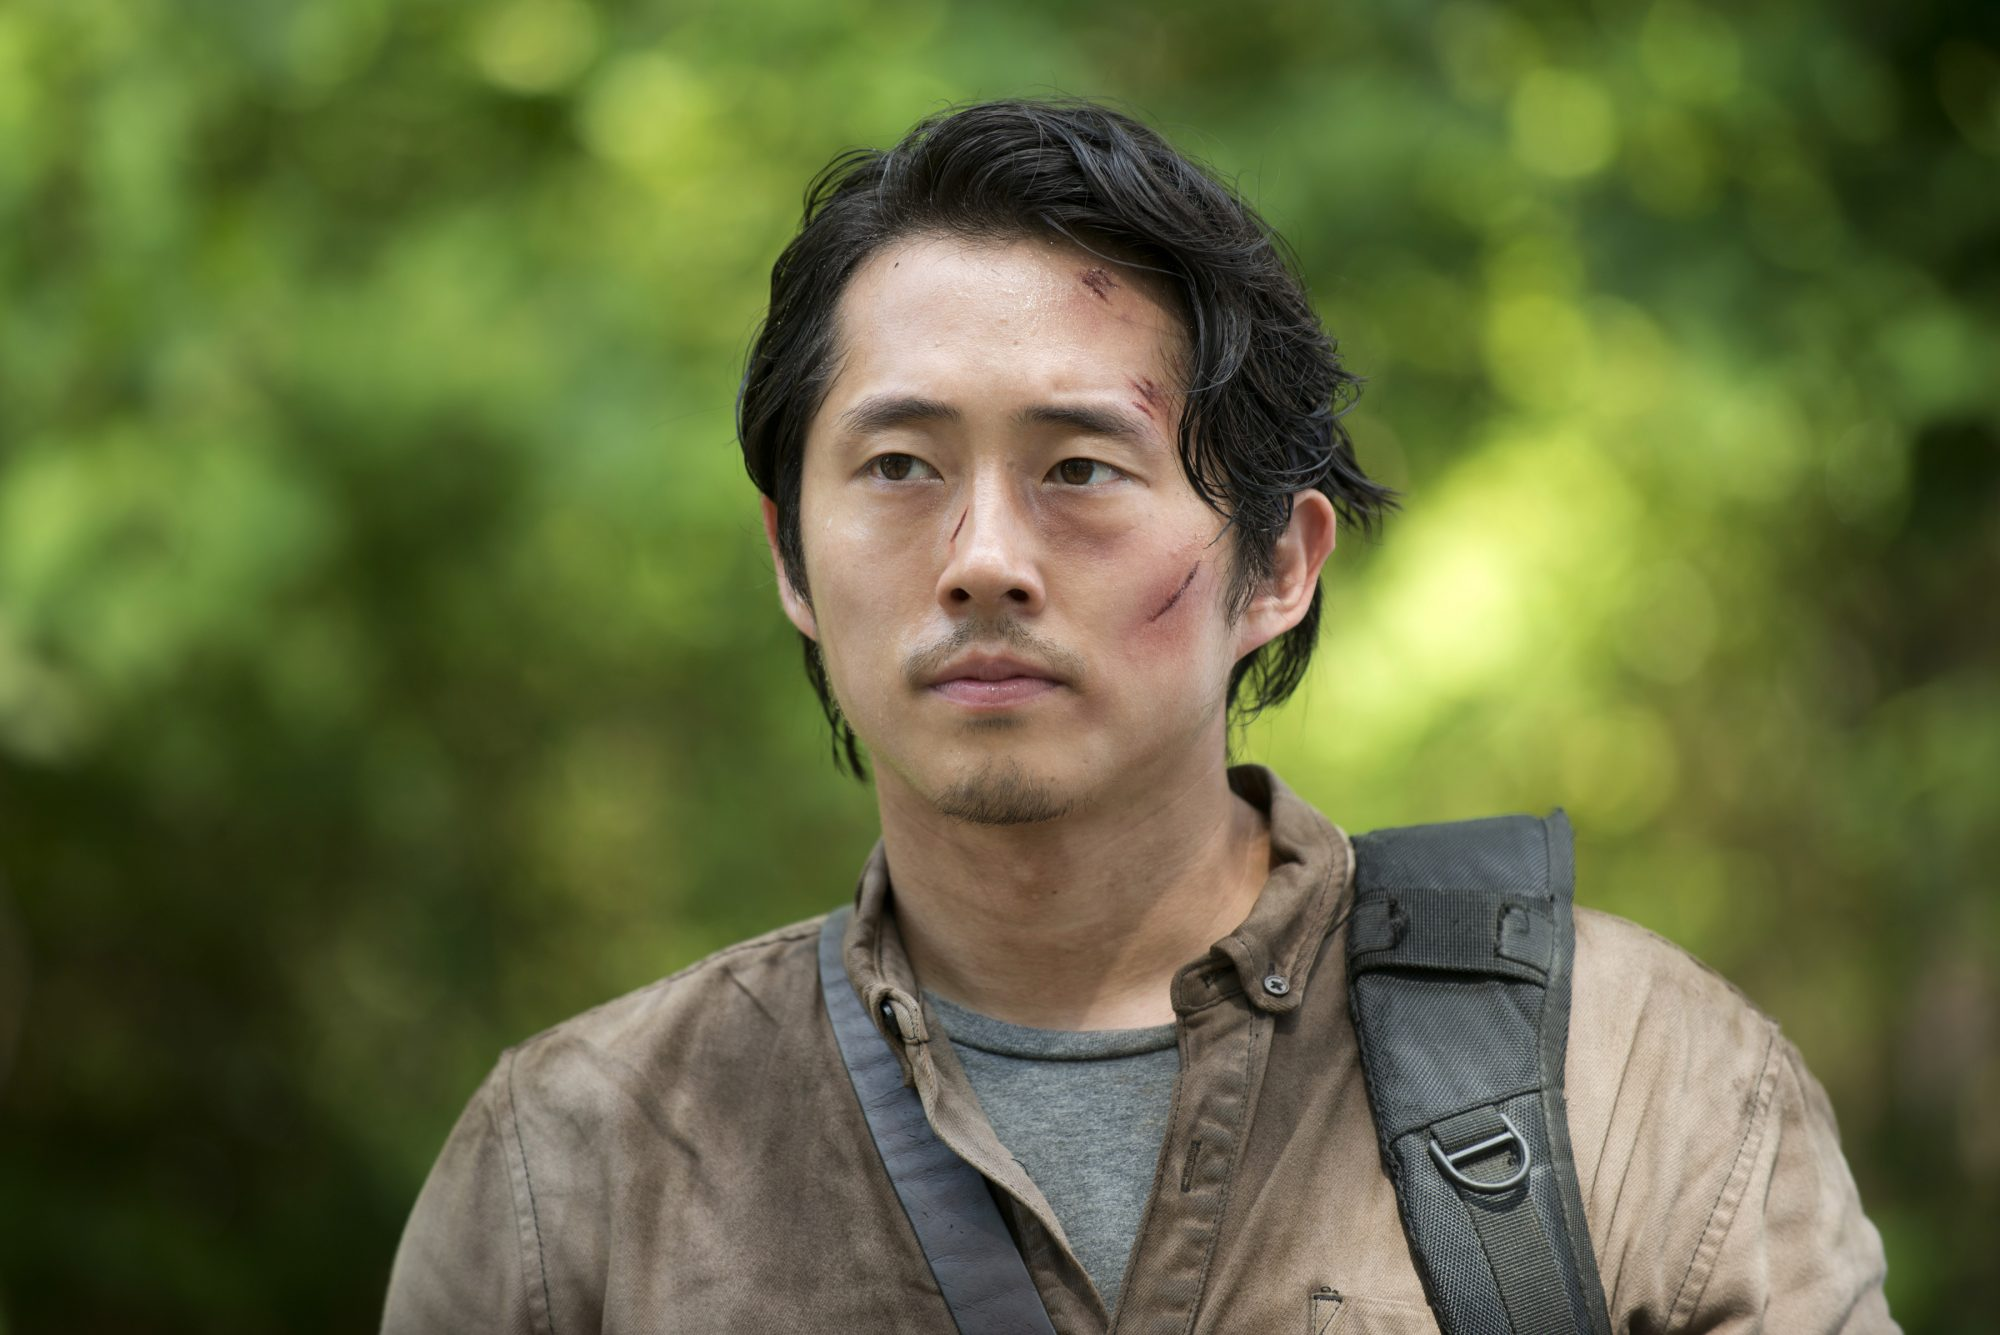 Glenn-Looks-Serious-in-The-Walking-Dead-Season-6-Episode-3.jpg